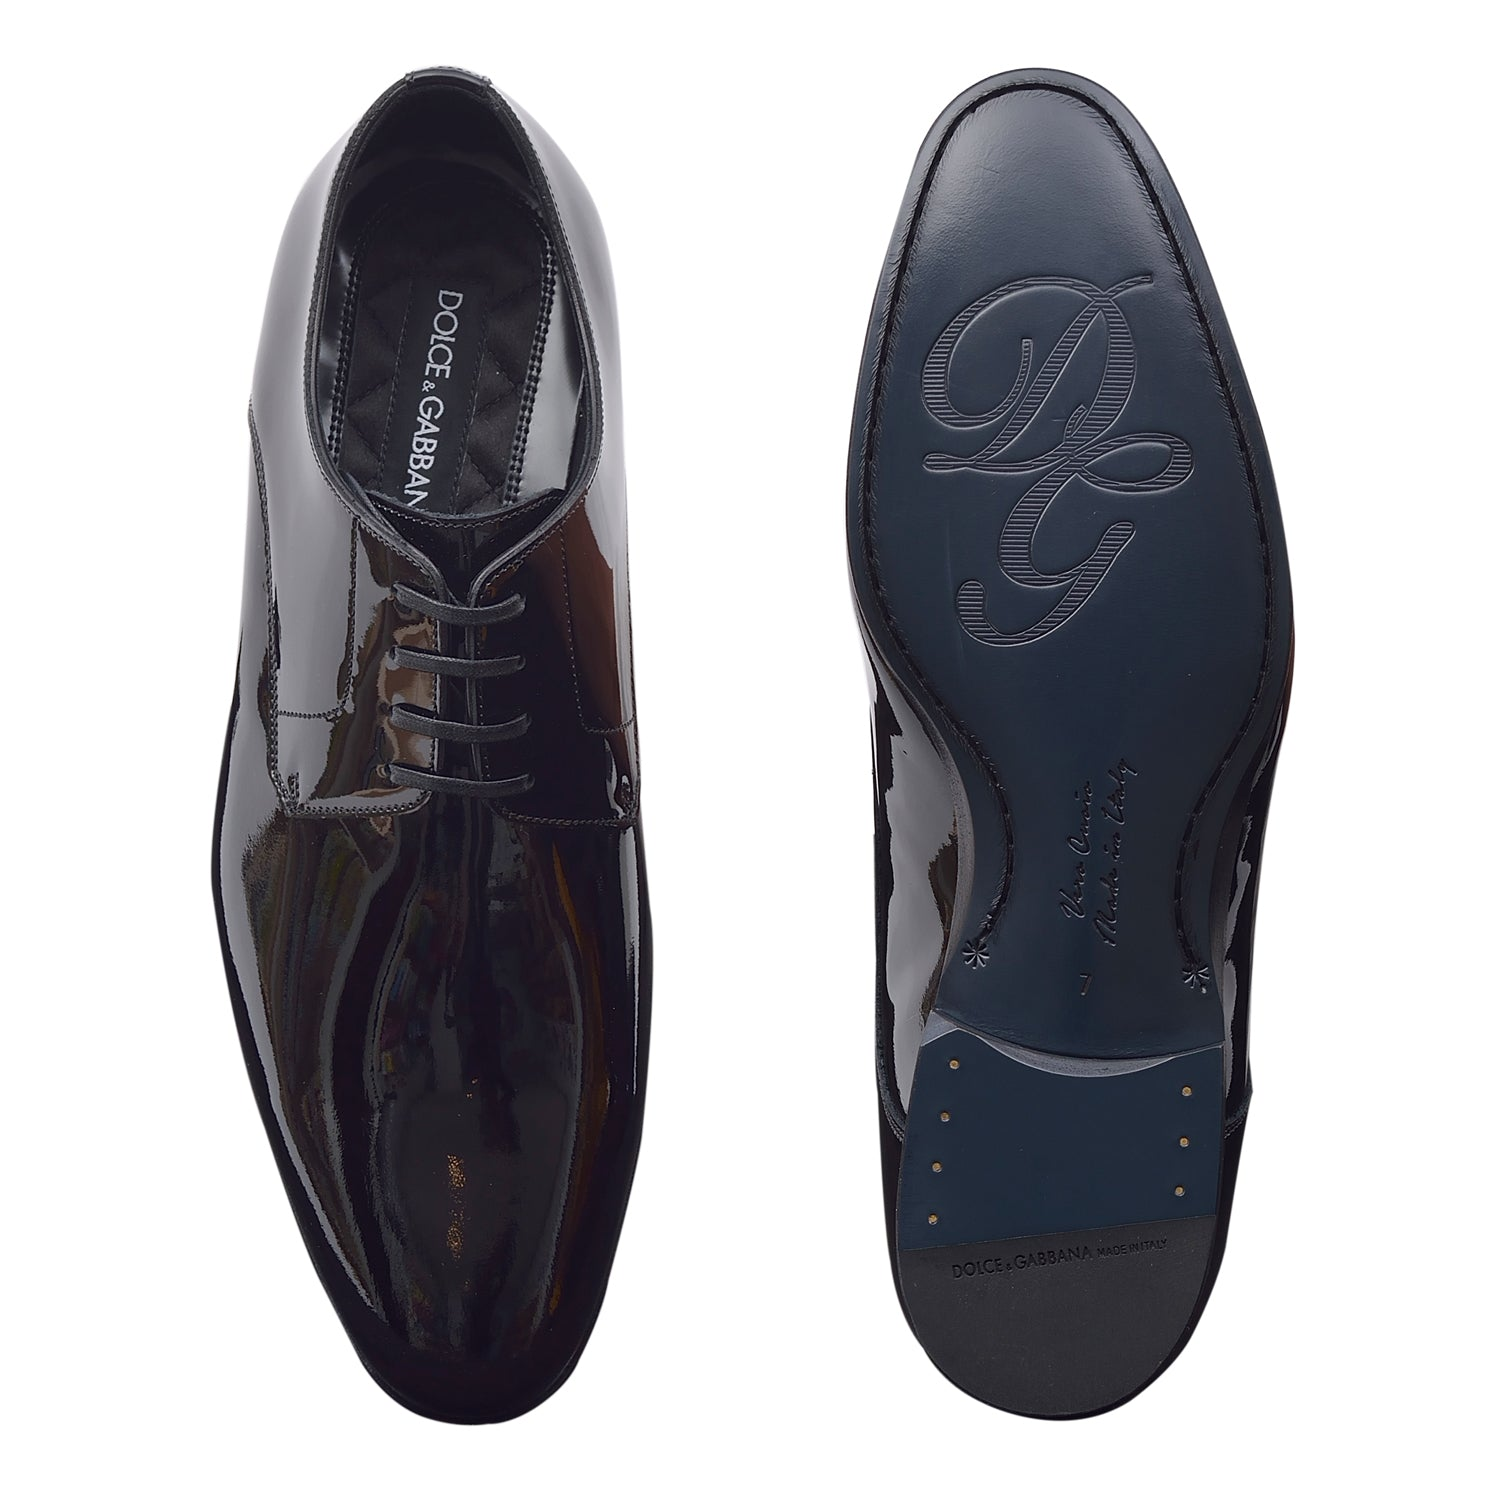 D&G Lace-up Shoes